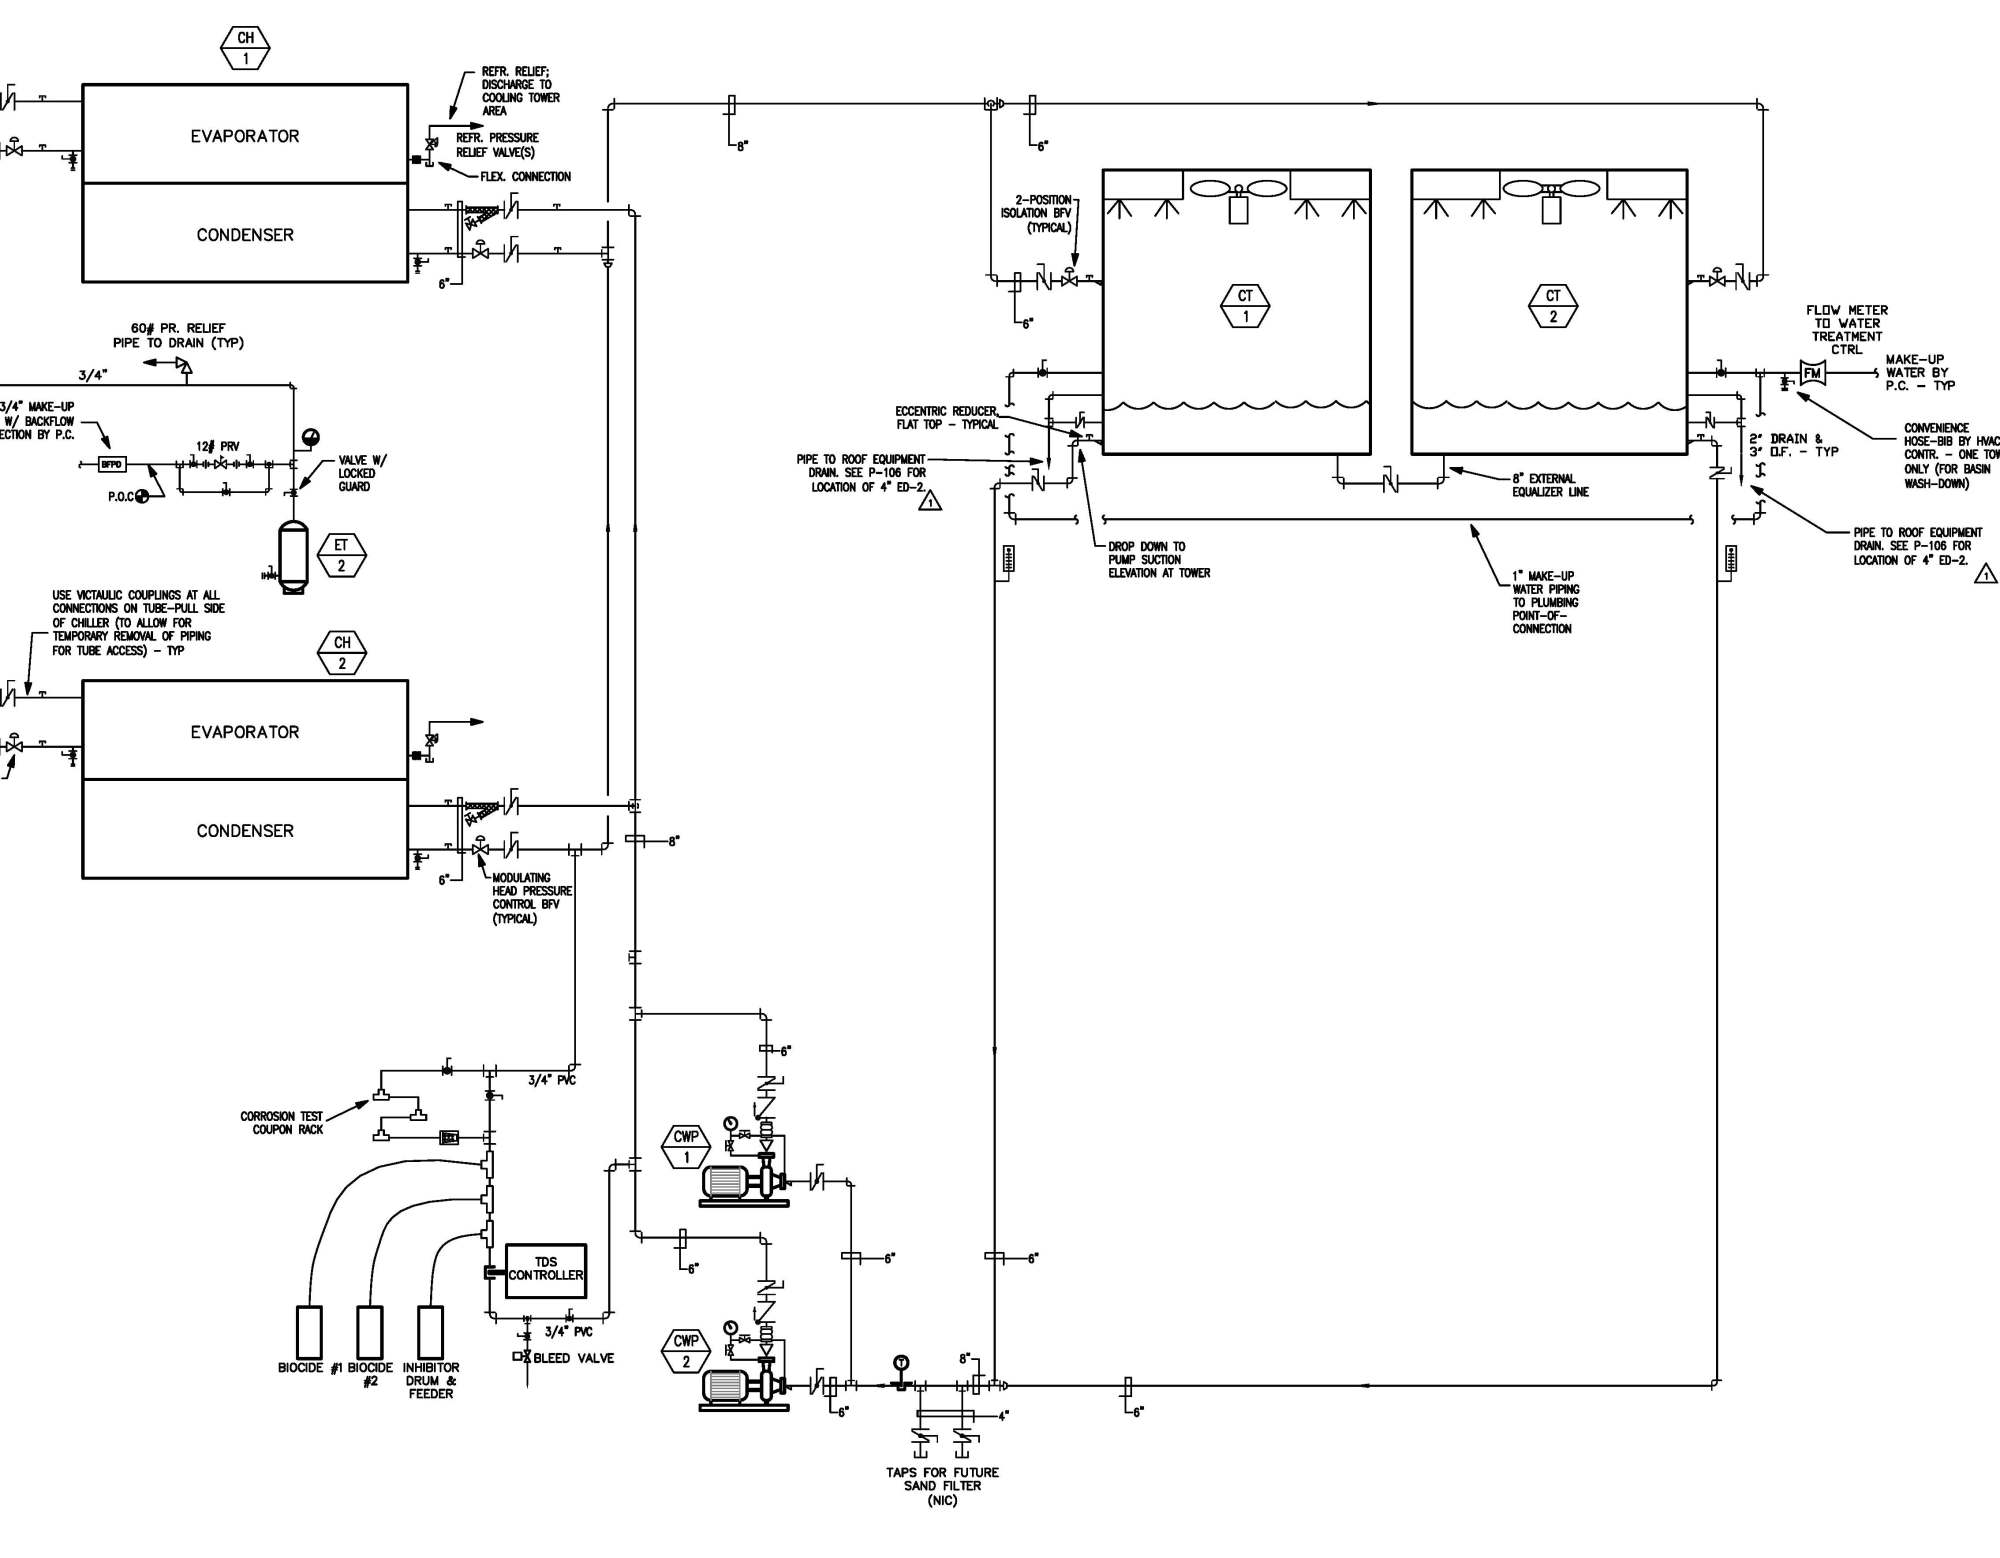 hight resolution of piping line diagram simple wiring diagram heat exchanger line diagram piping line diagram